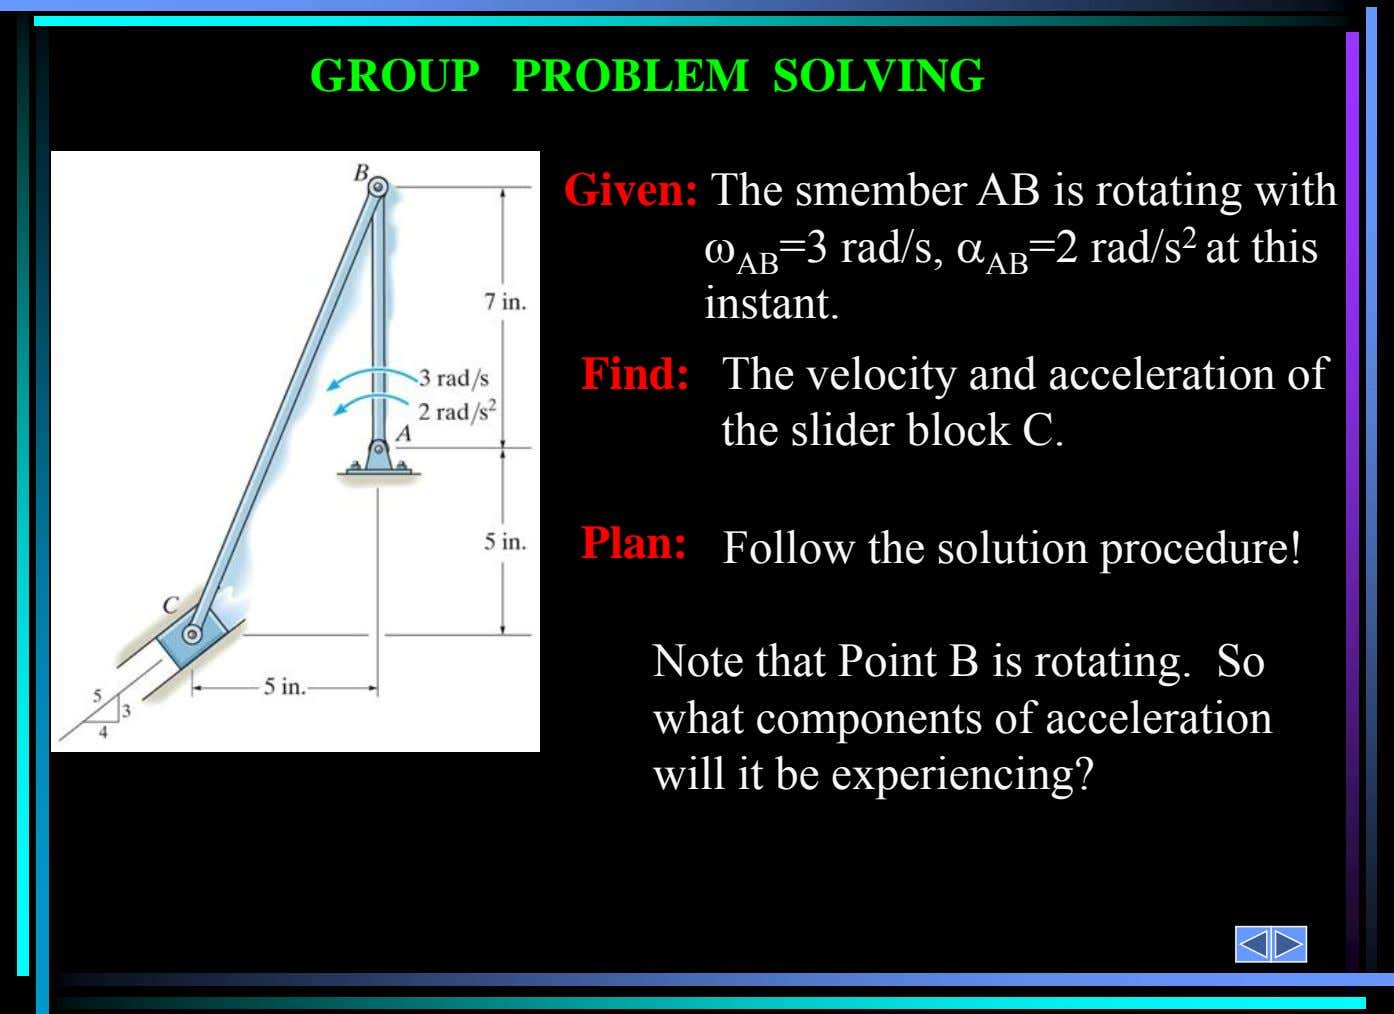 Find: The velocity and acceleration of the slider block C. Plan: Follow the solution procedure! Given: